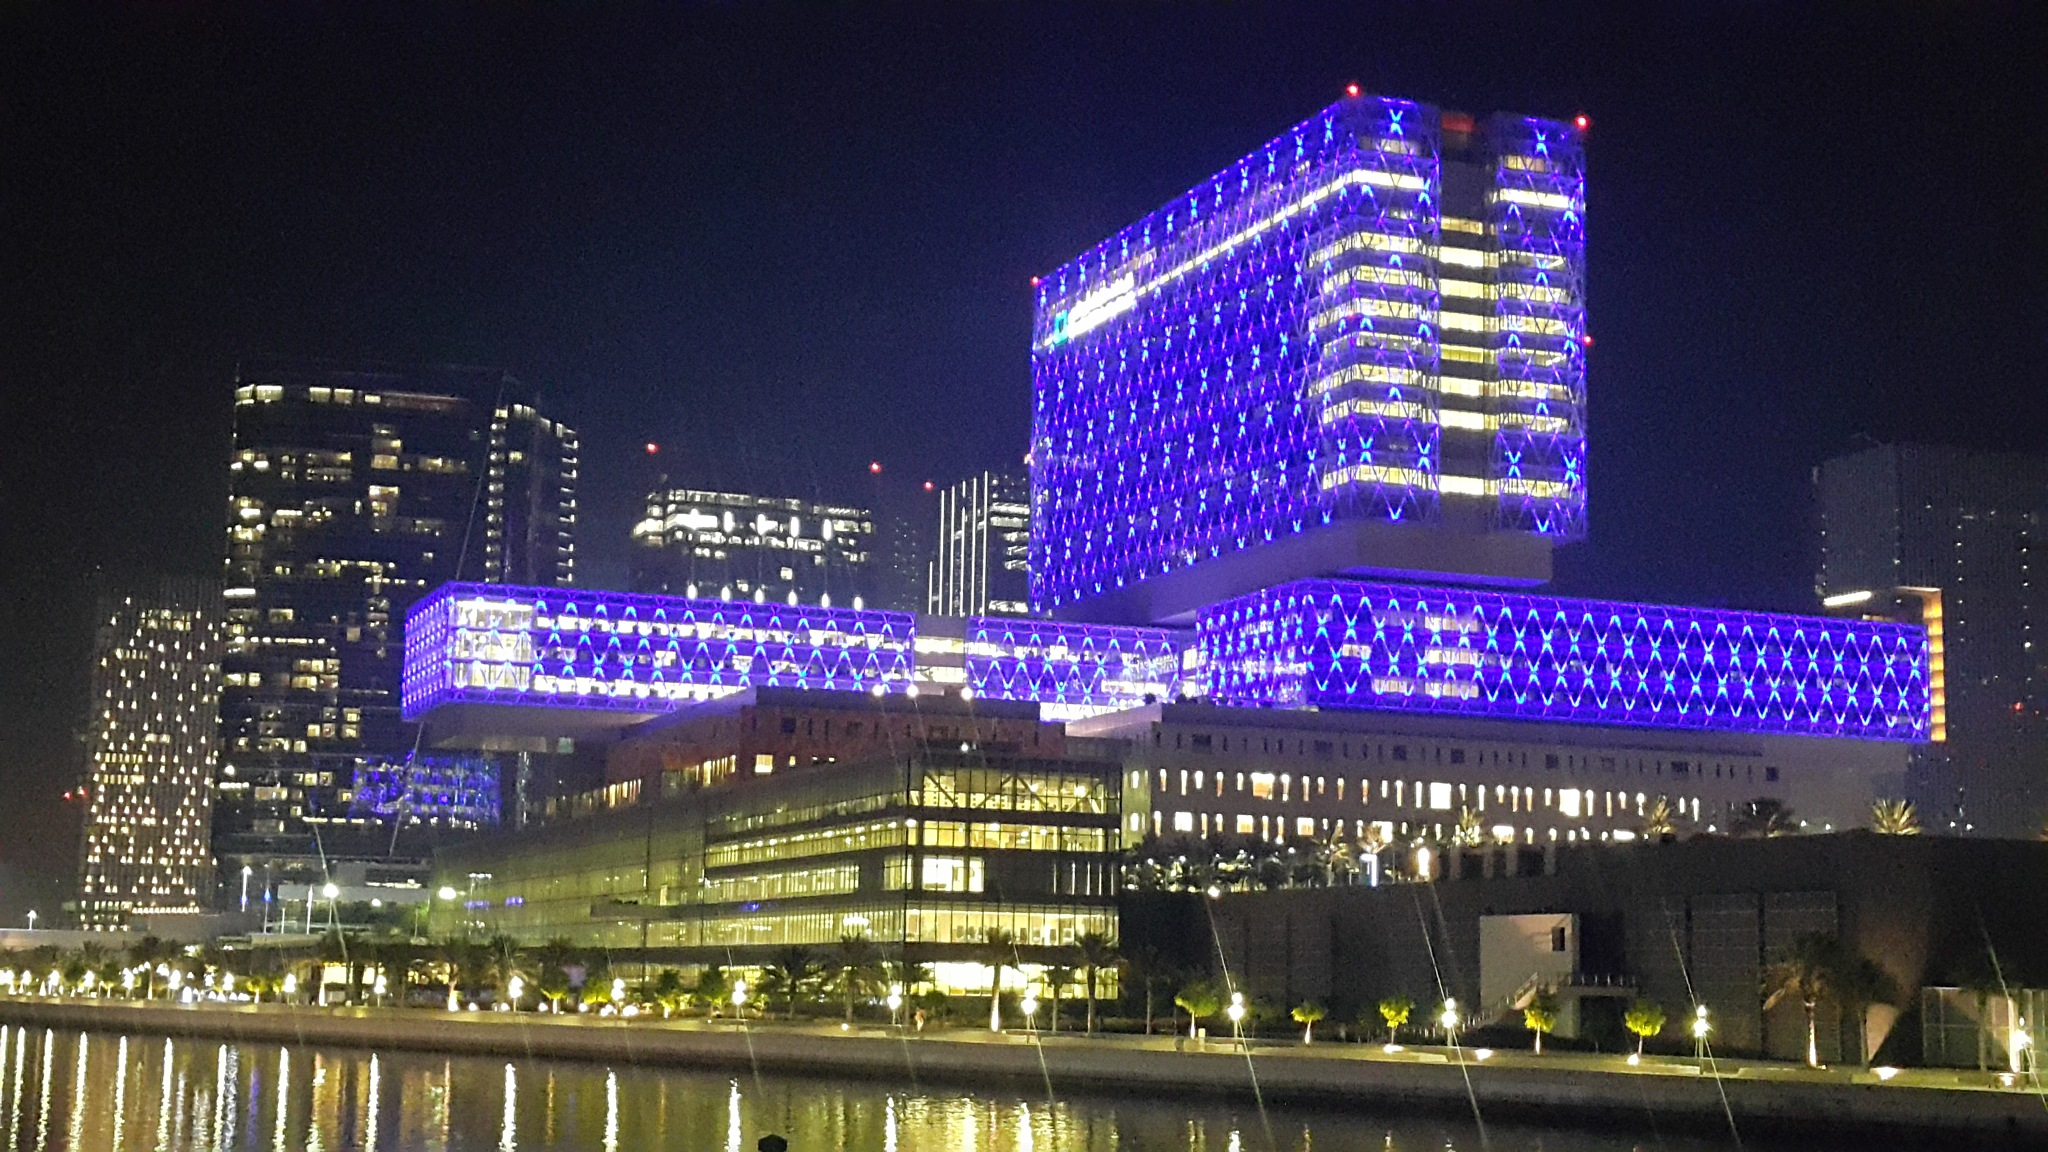 The Cleveland Clinic in Abu Dhabi  by Haseeb Ahmed